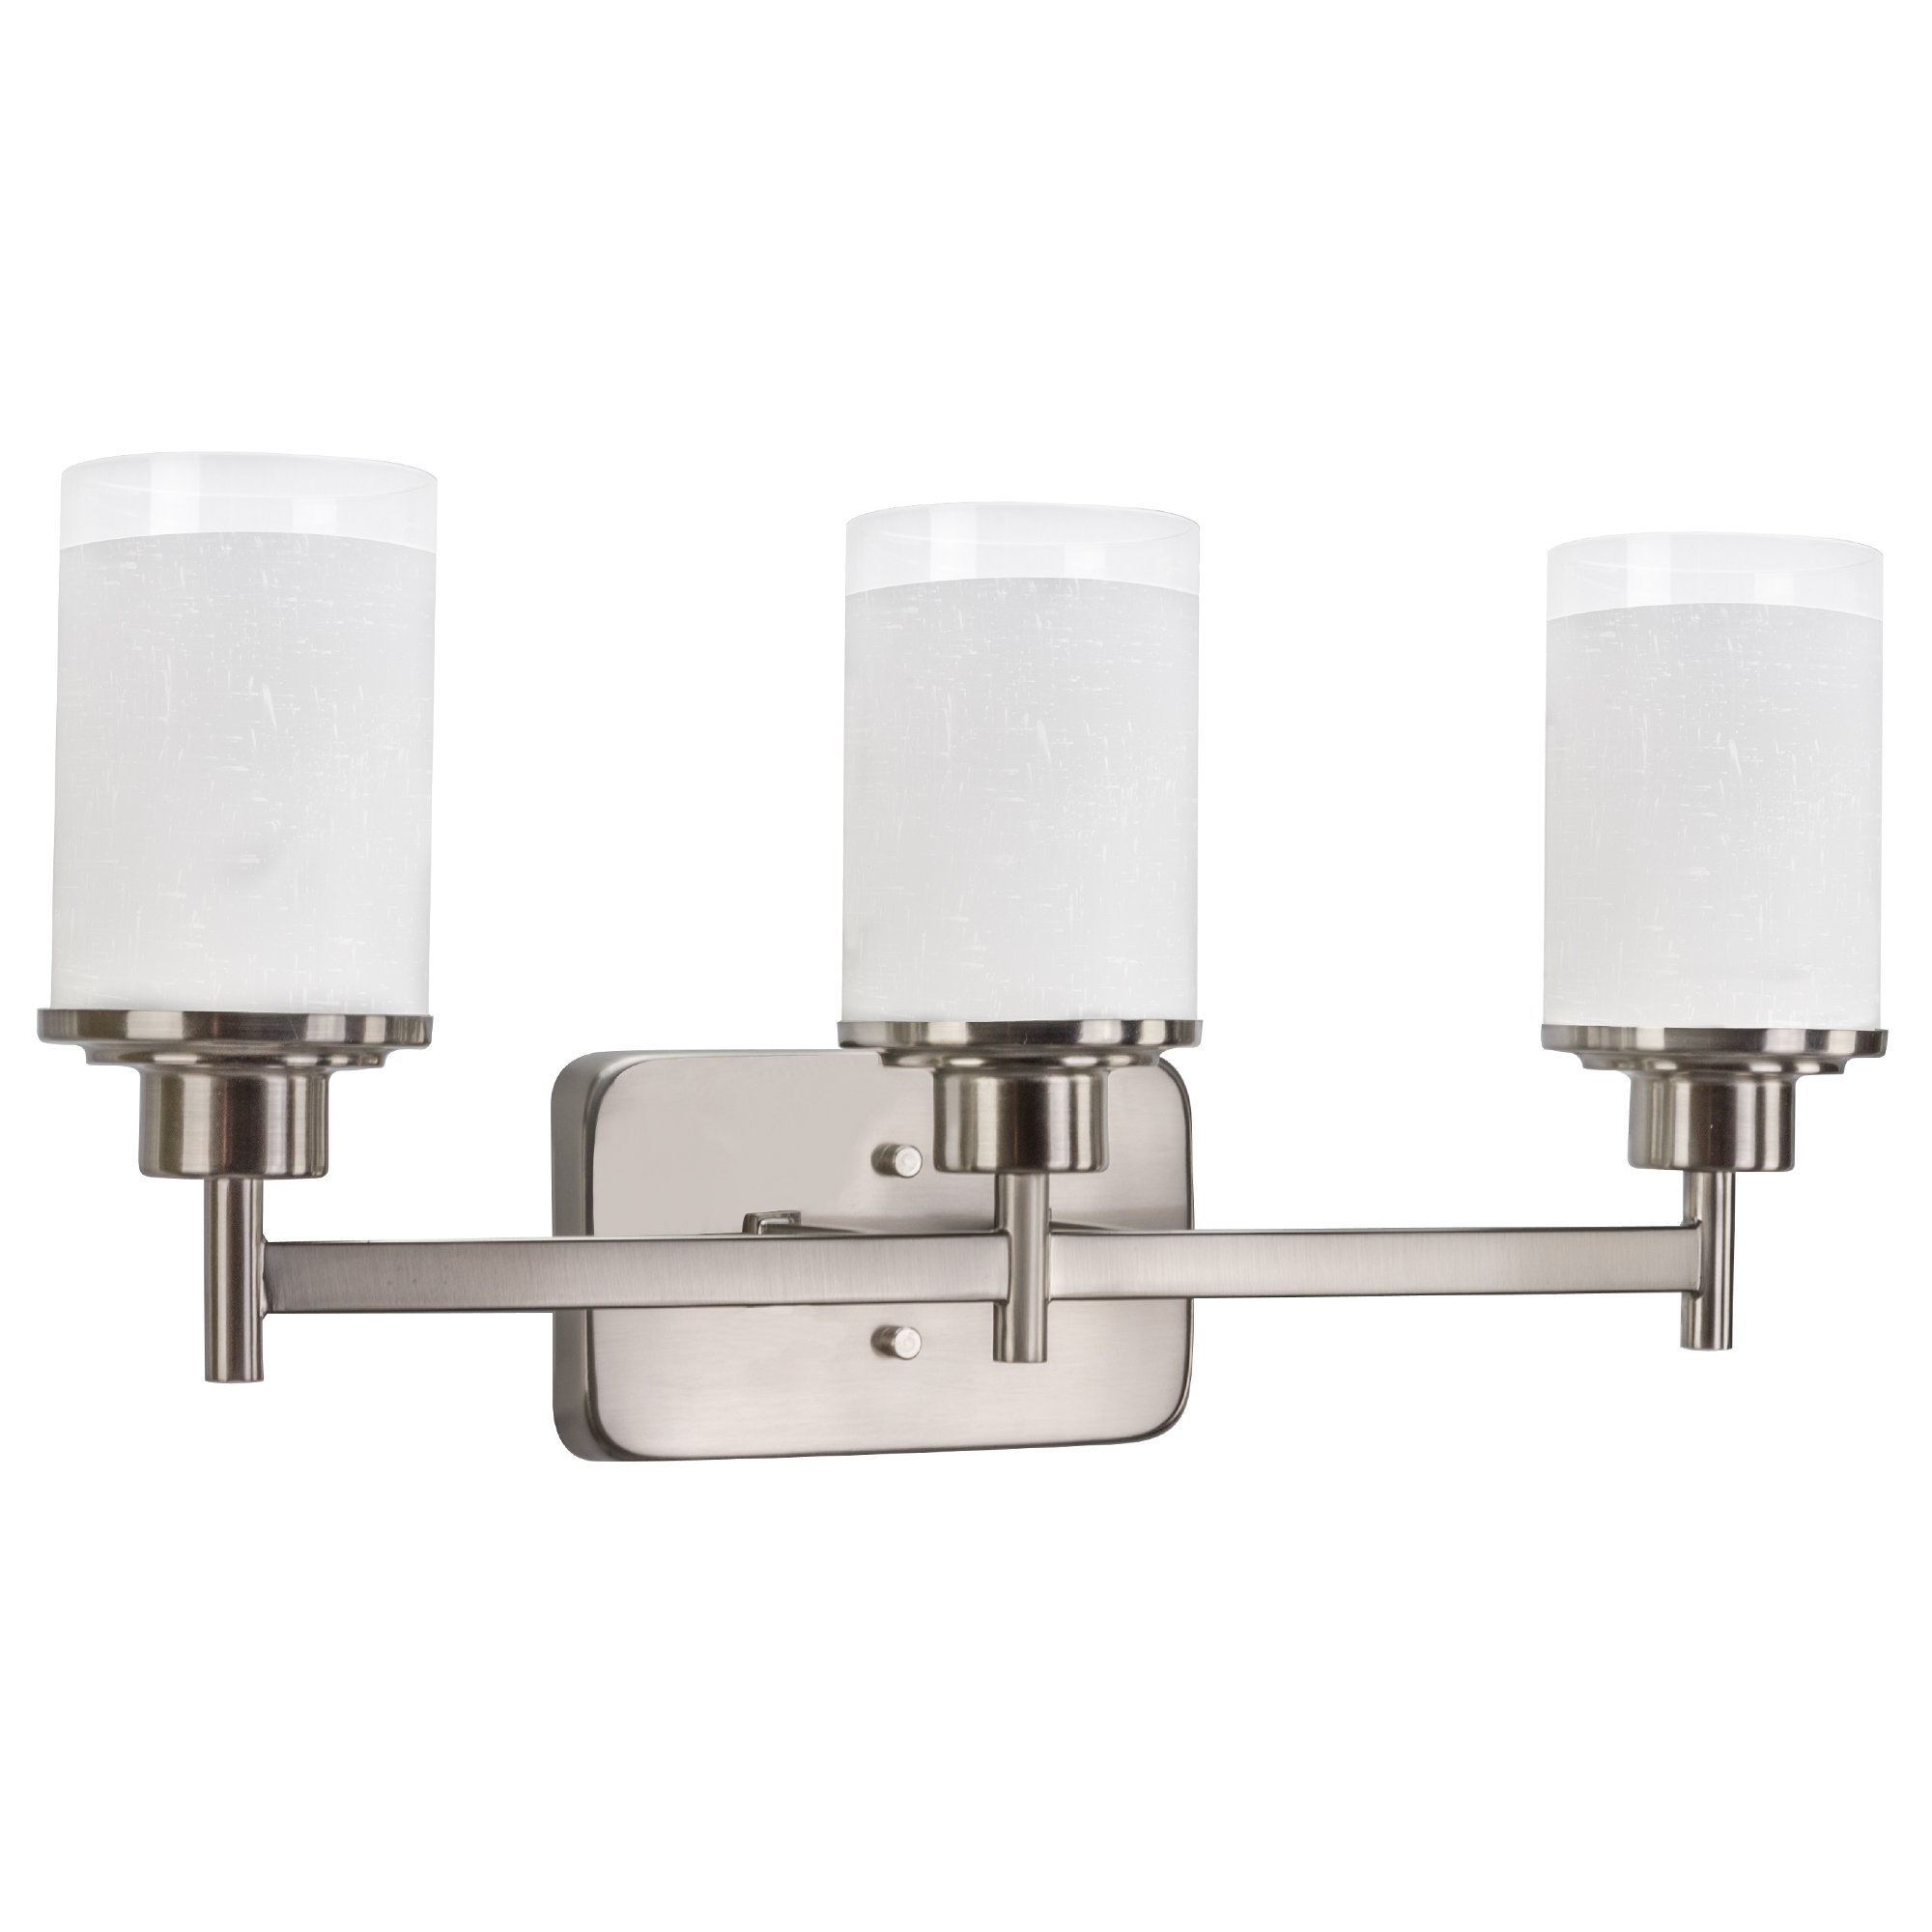 Revel Windsor 22'' 3-Light Modern Vanity/Bathroom Light, Brushed Nickel Finish & Frosted Linen Glass Shades